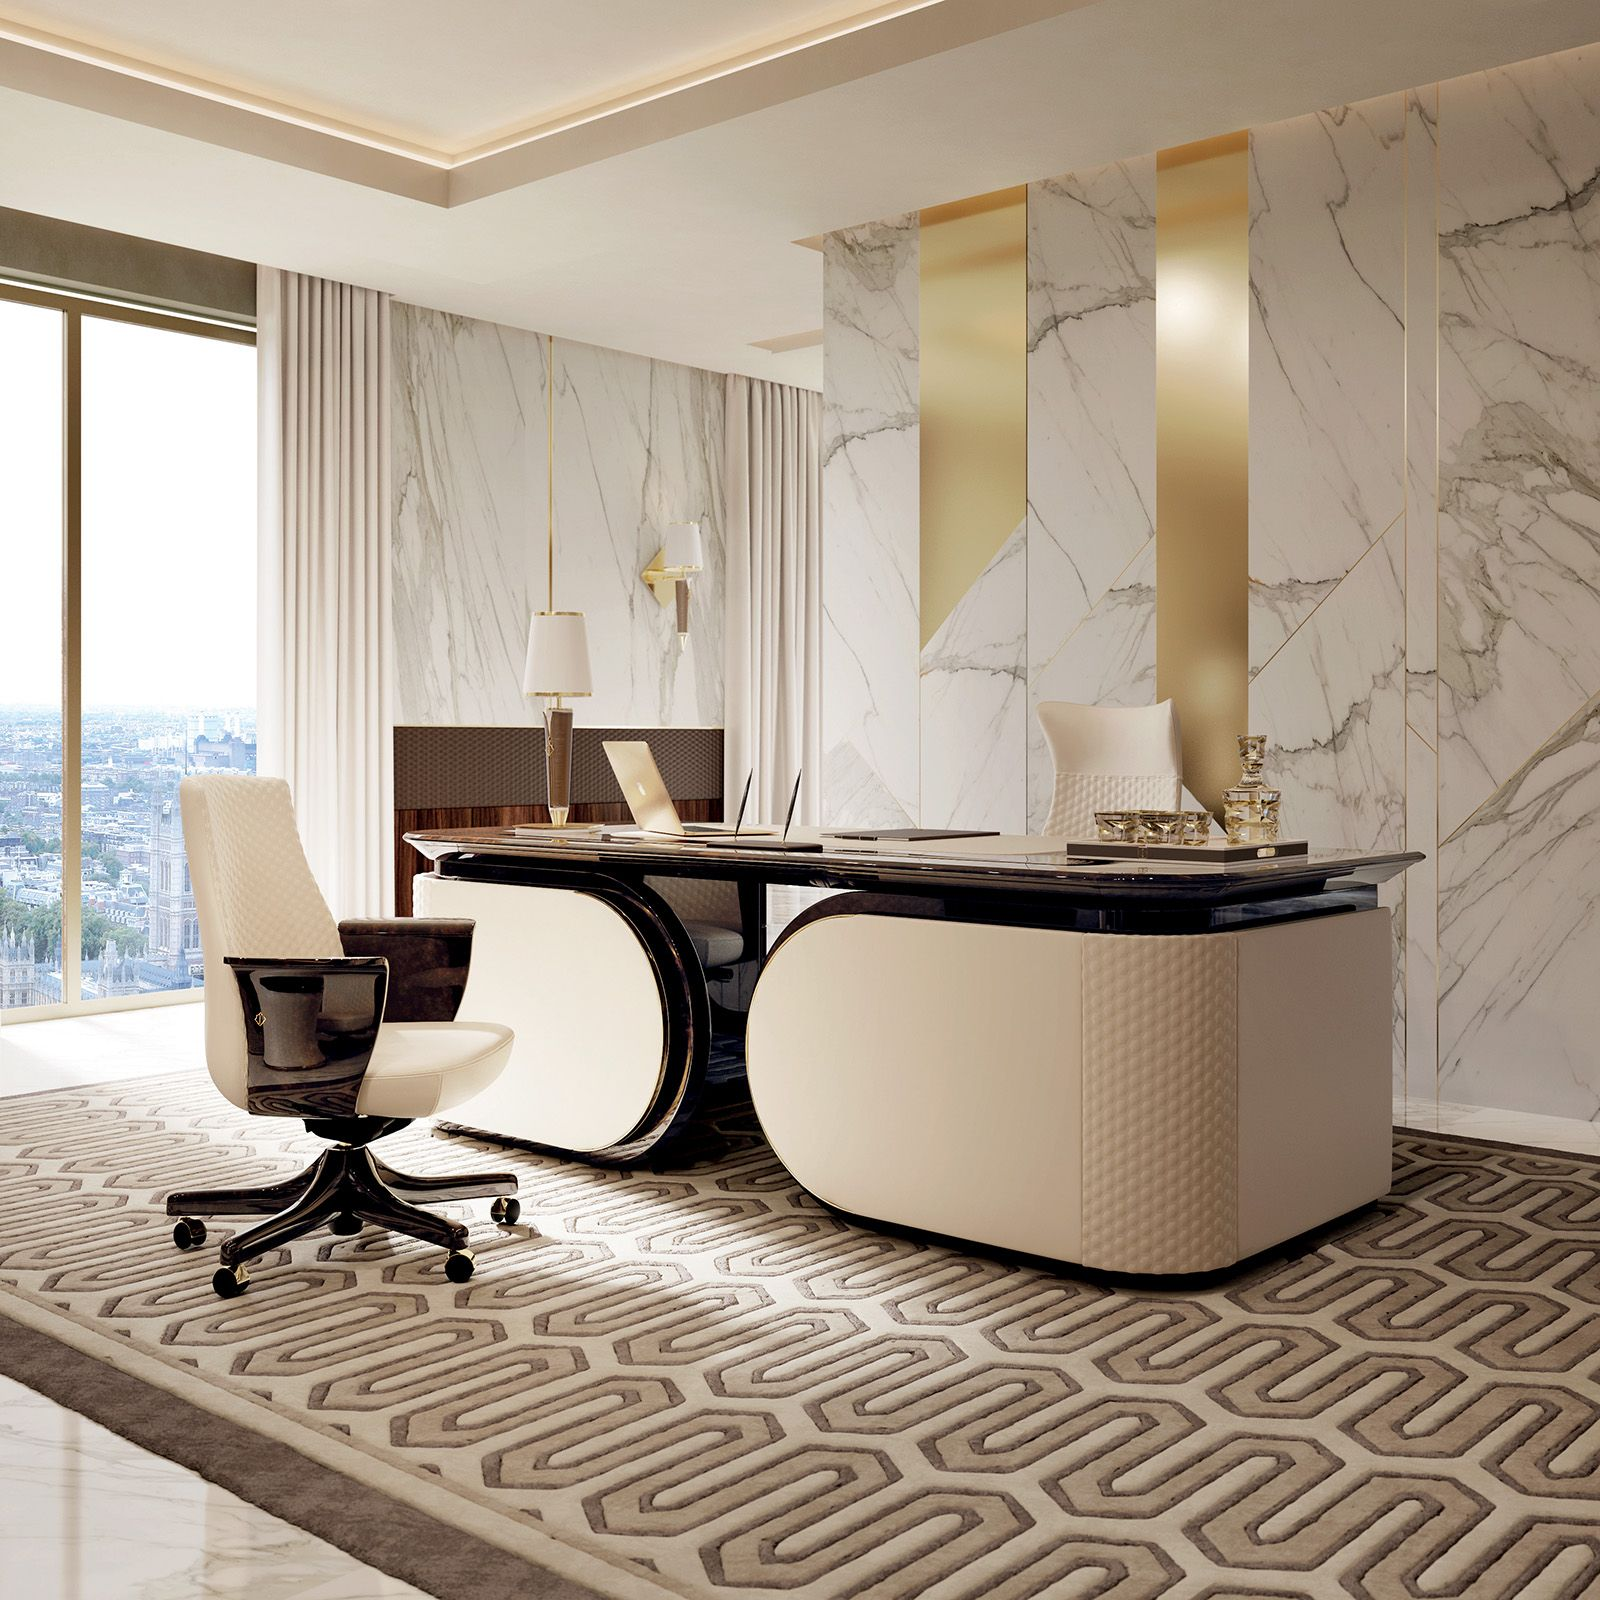 Vogue collection italian luxury office desk for Modern furniture design